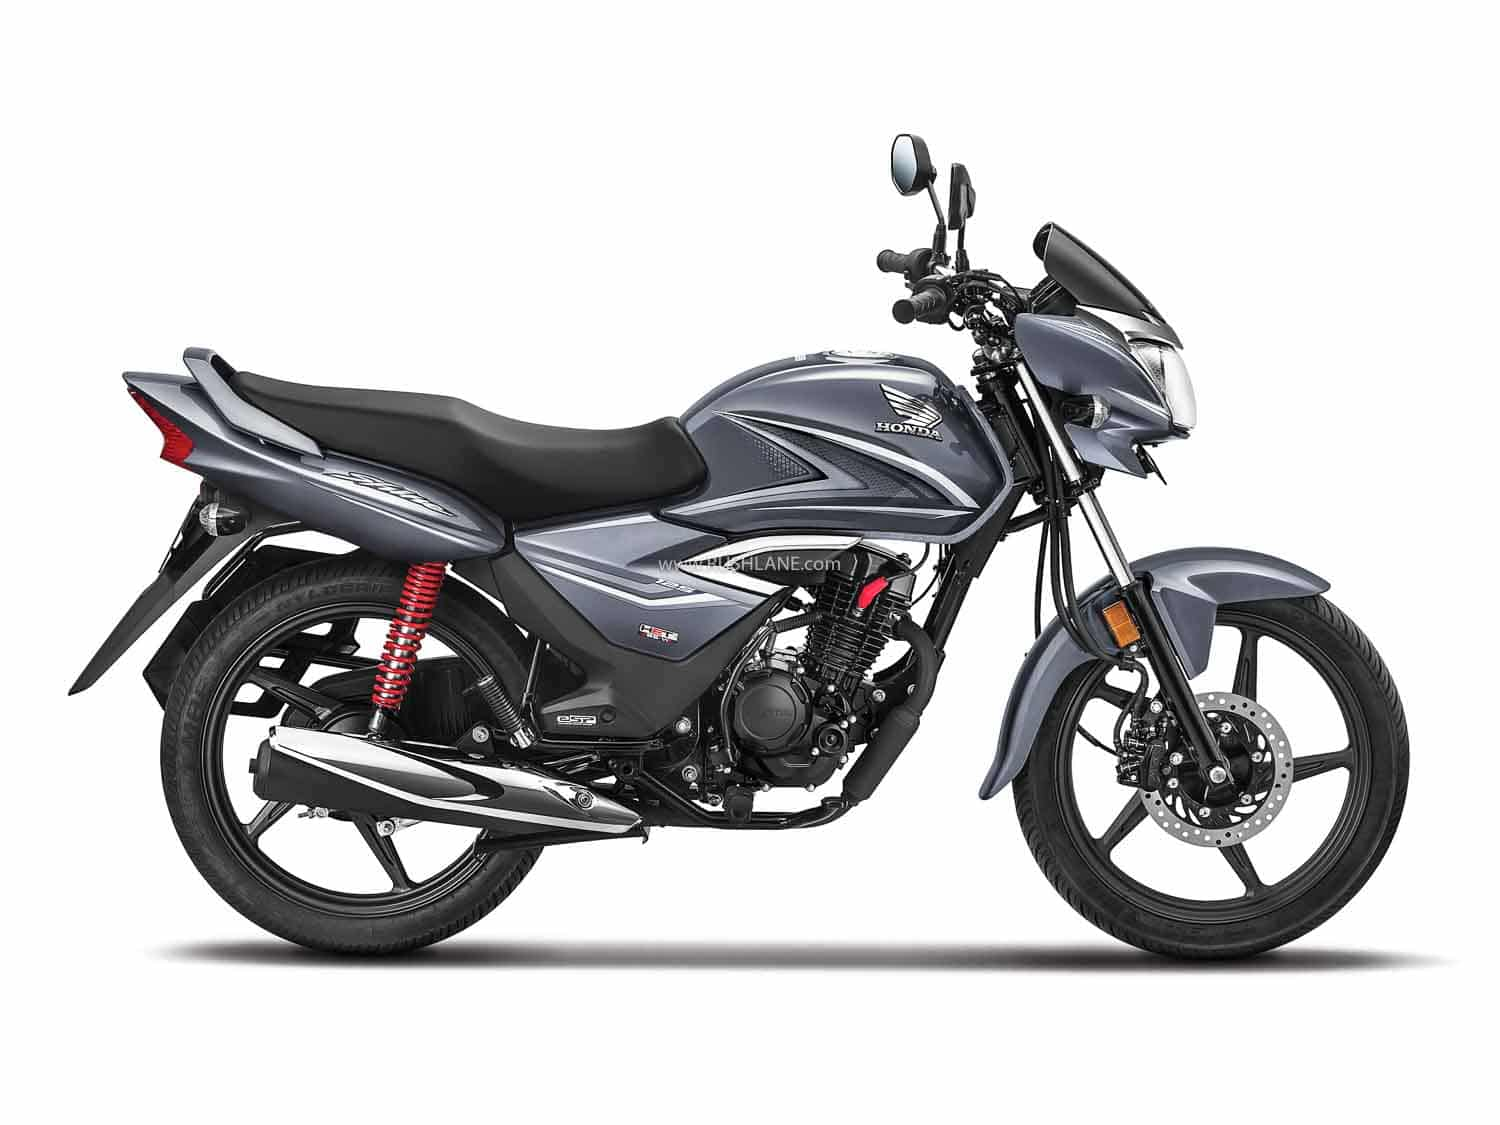 2020 Honda CB Shine BS6